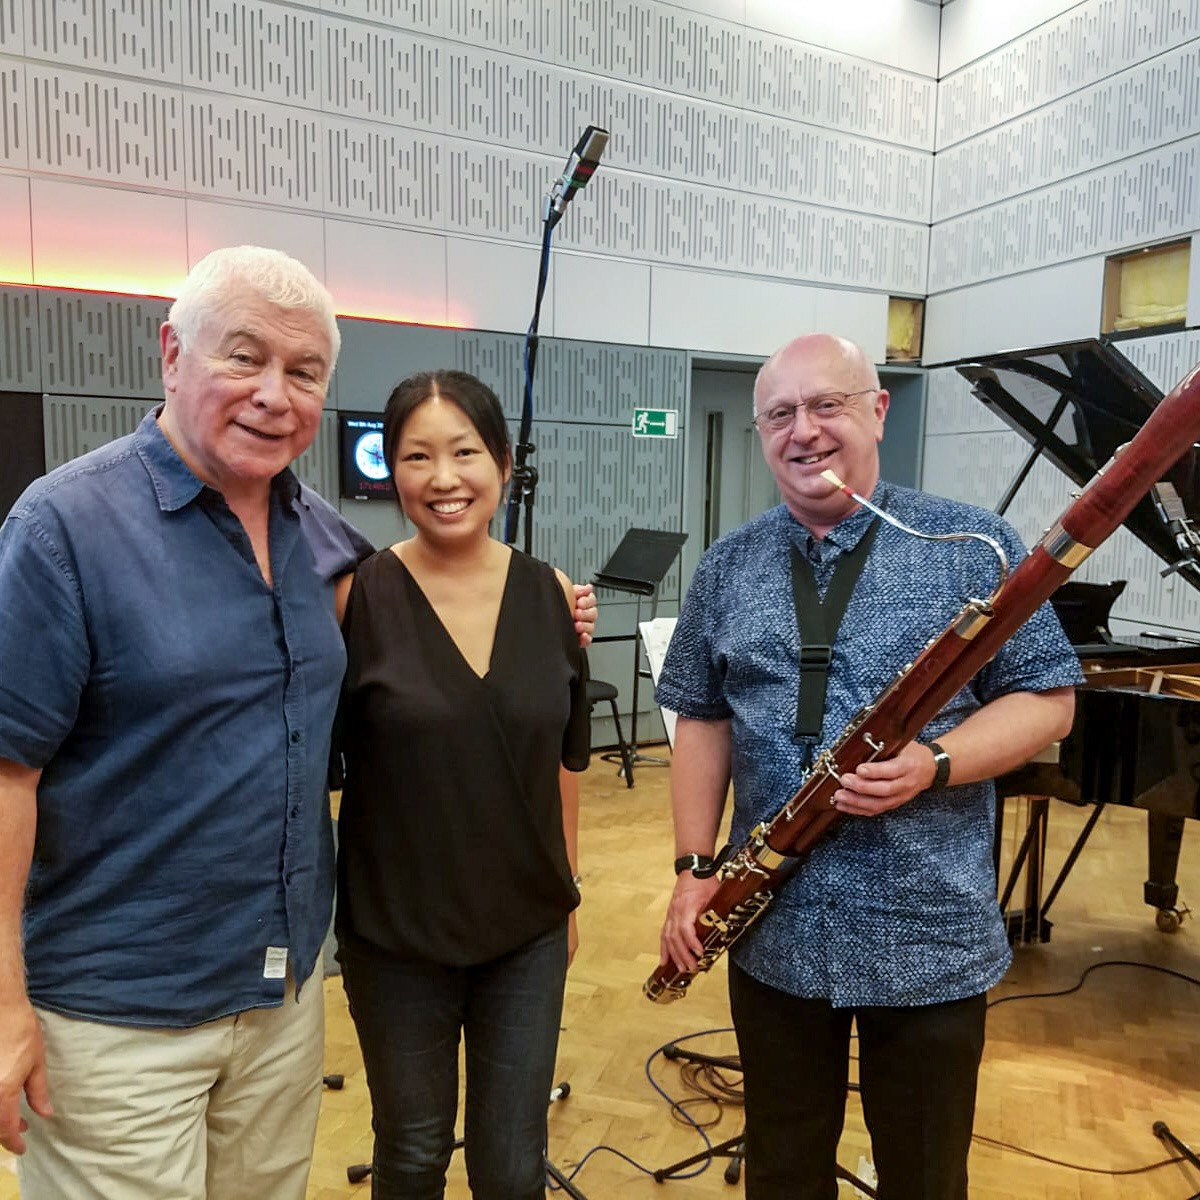 With Sean Rafferty and Louisa Lam, BBC Radio 3 'In Tune'